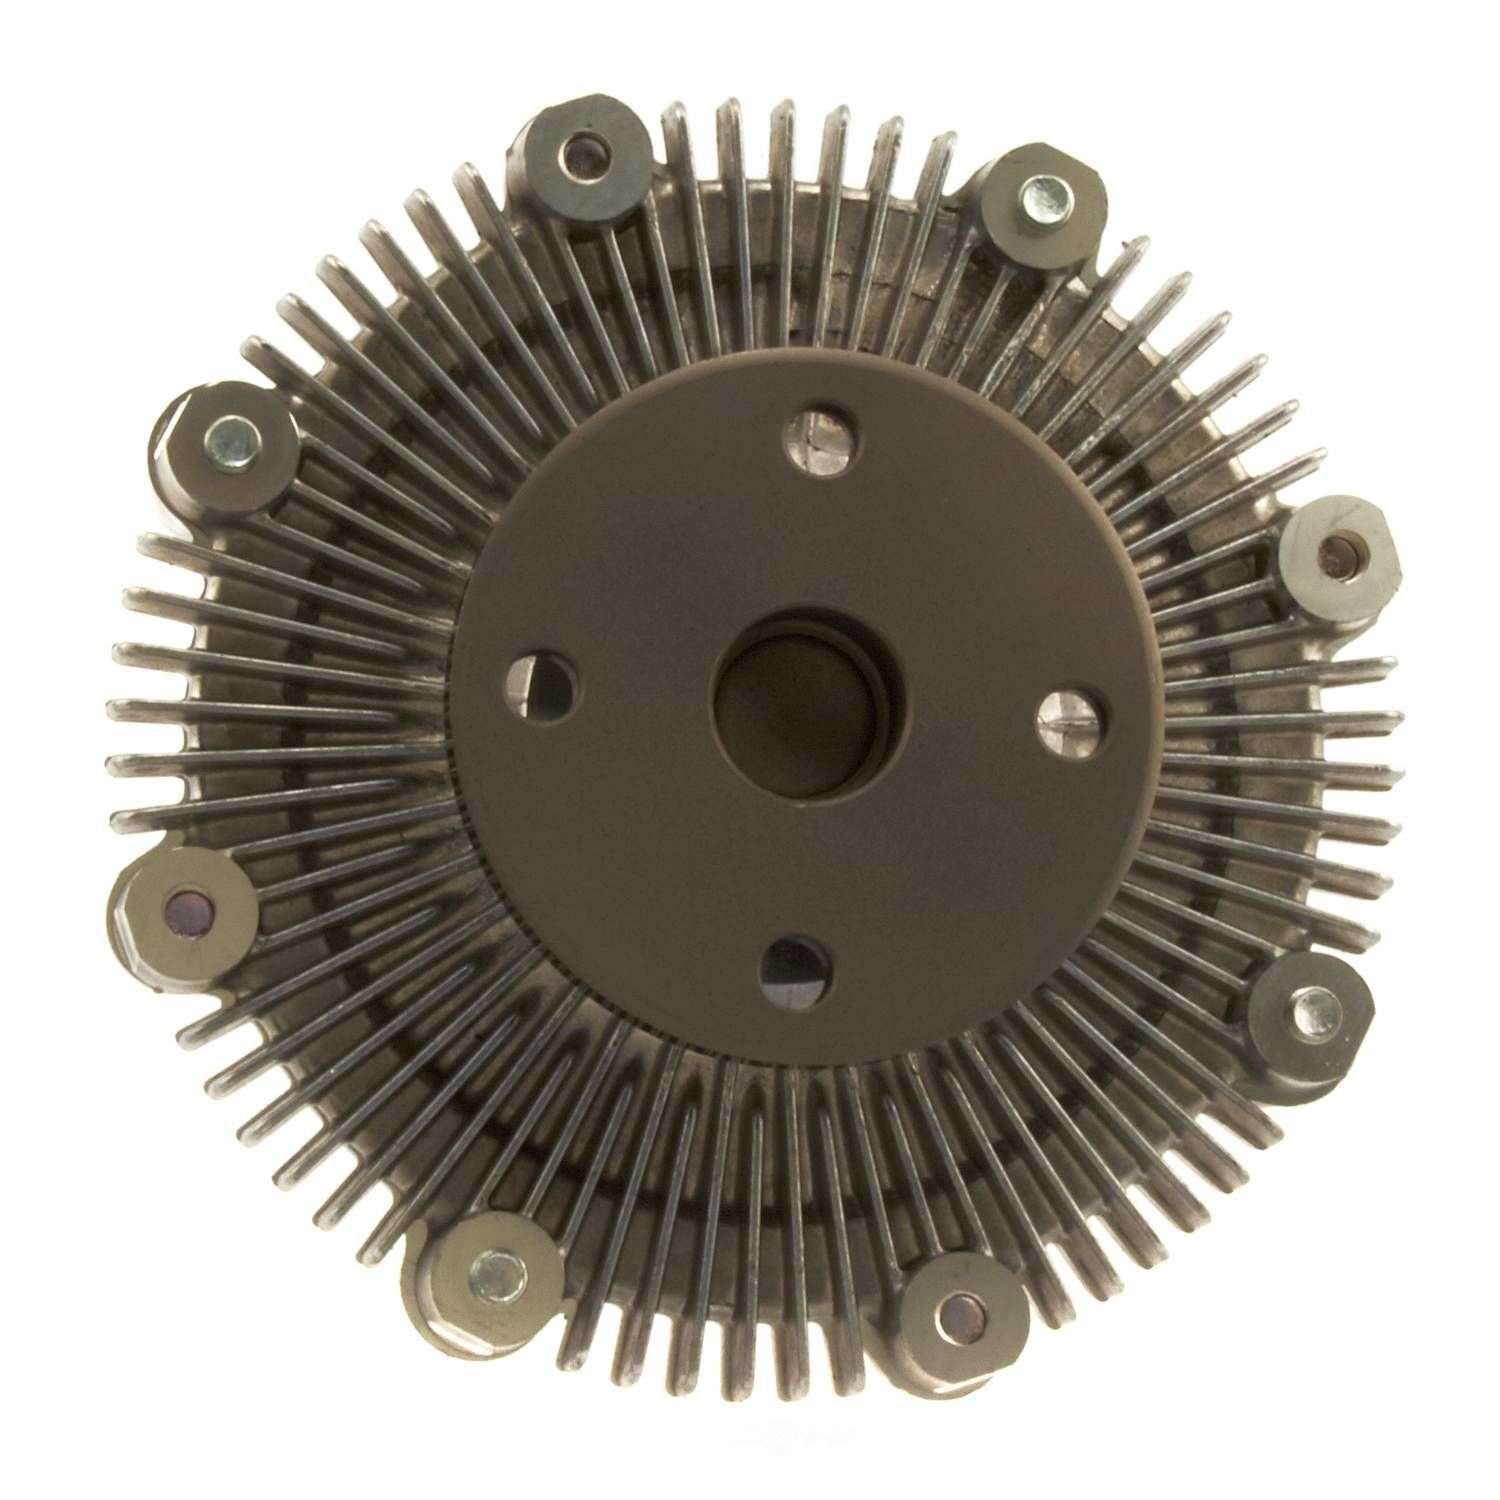 AISIN WORLD CORP. OF AMERICA - Engine Cooling Fan Clutch - AIS FCV-002